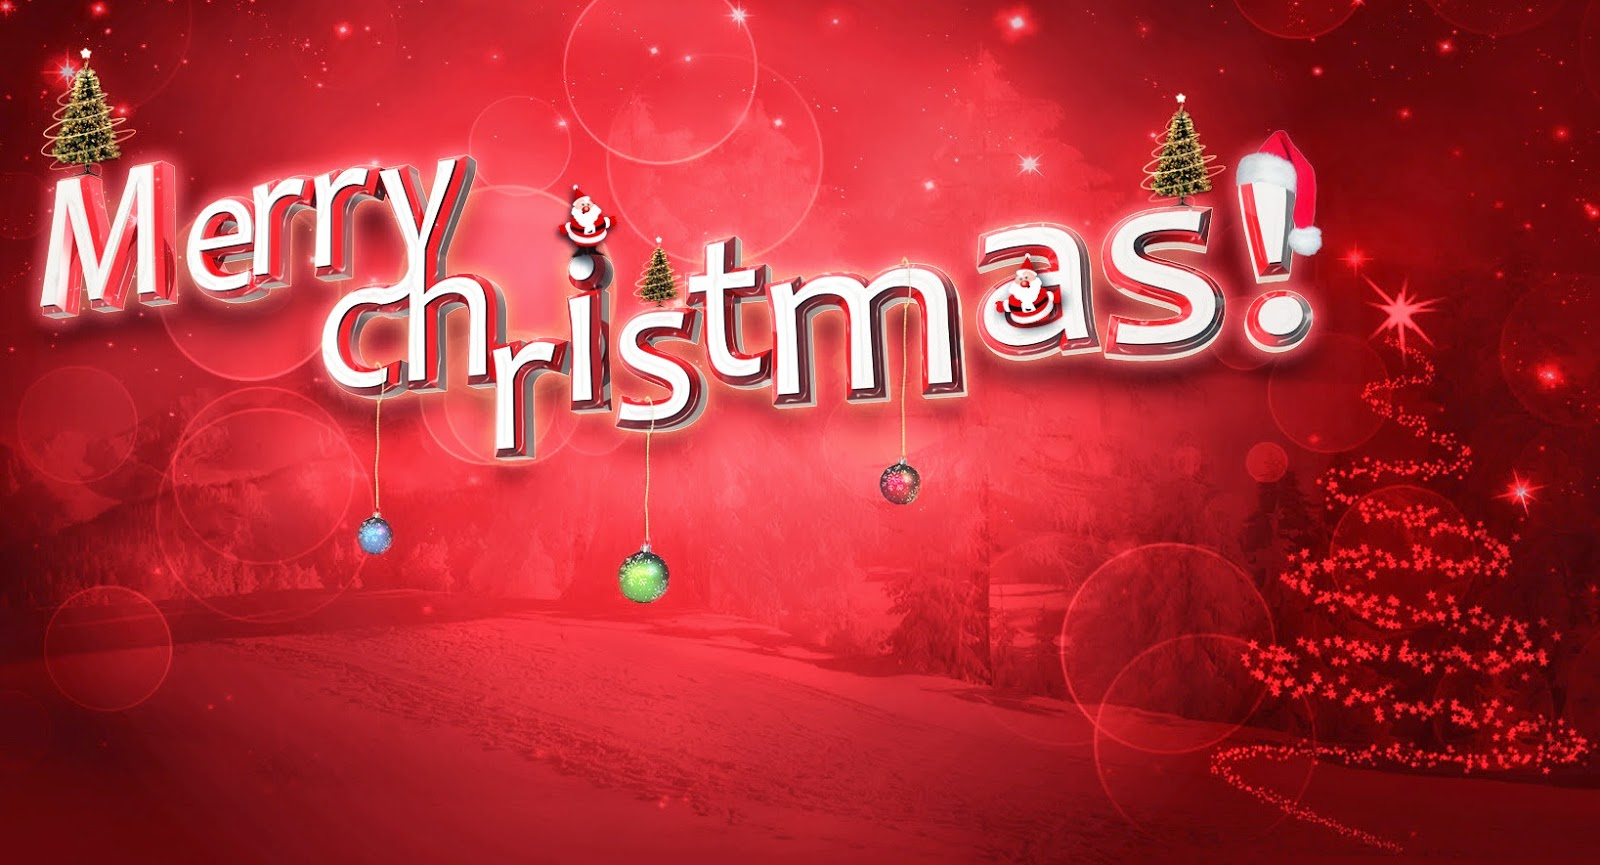 10 Best Merry Christmas 2014 Quotes,Wishes,Sms,Messages